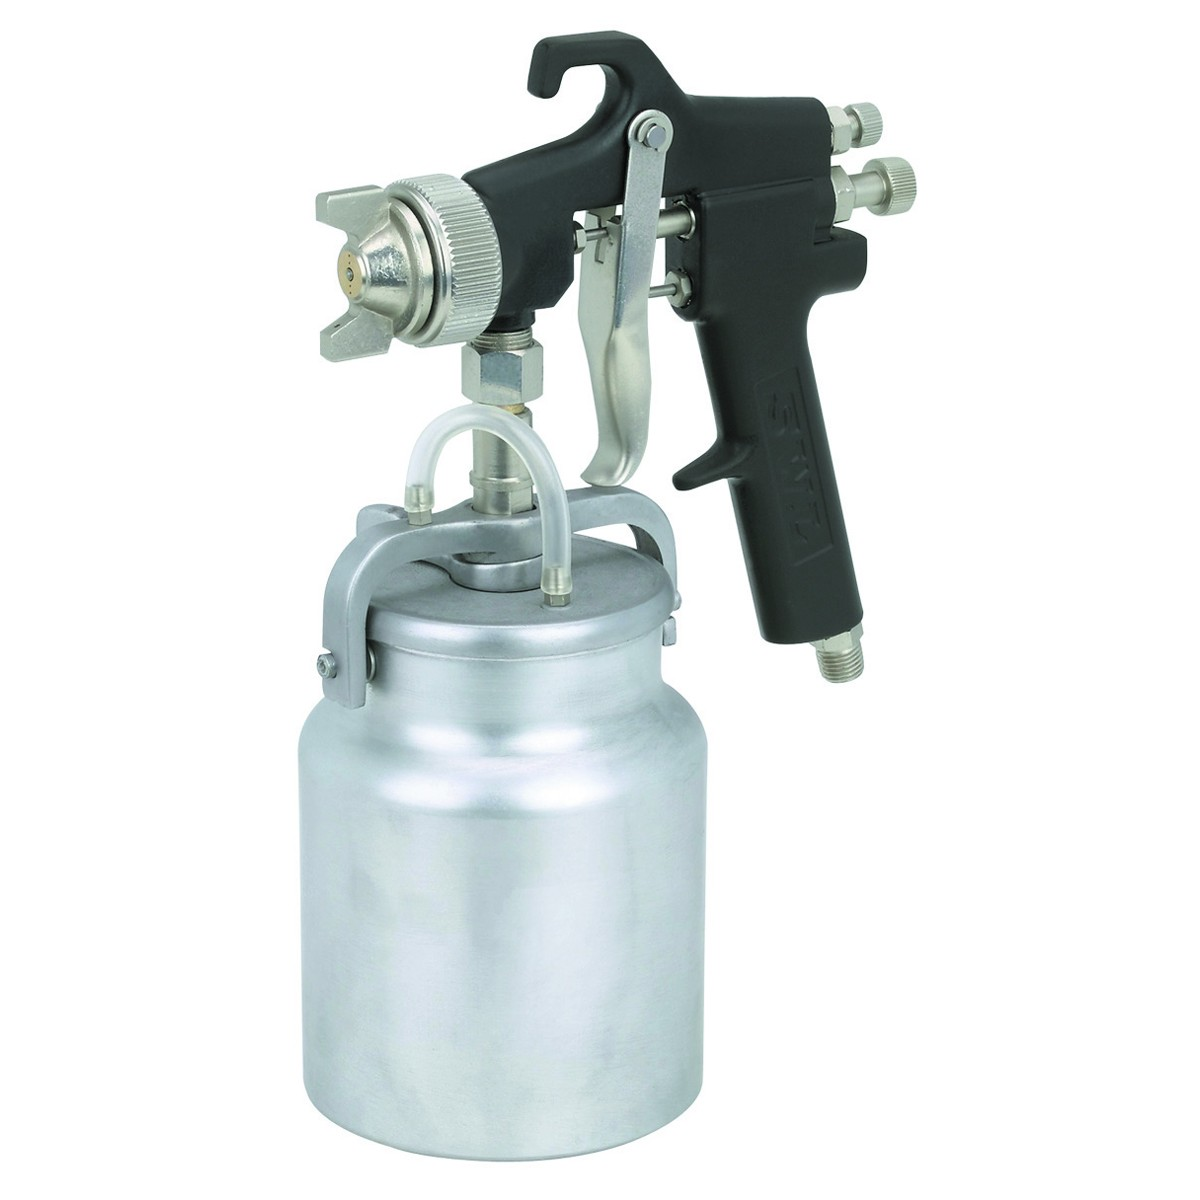 32 oz. Heavy Duty Automotive Air Spray Gun